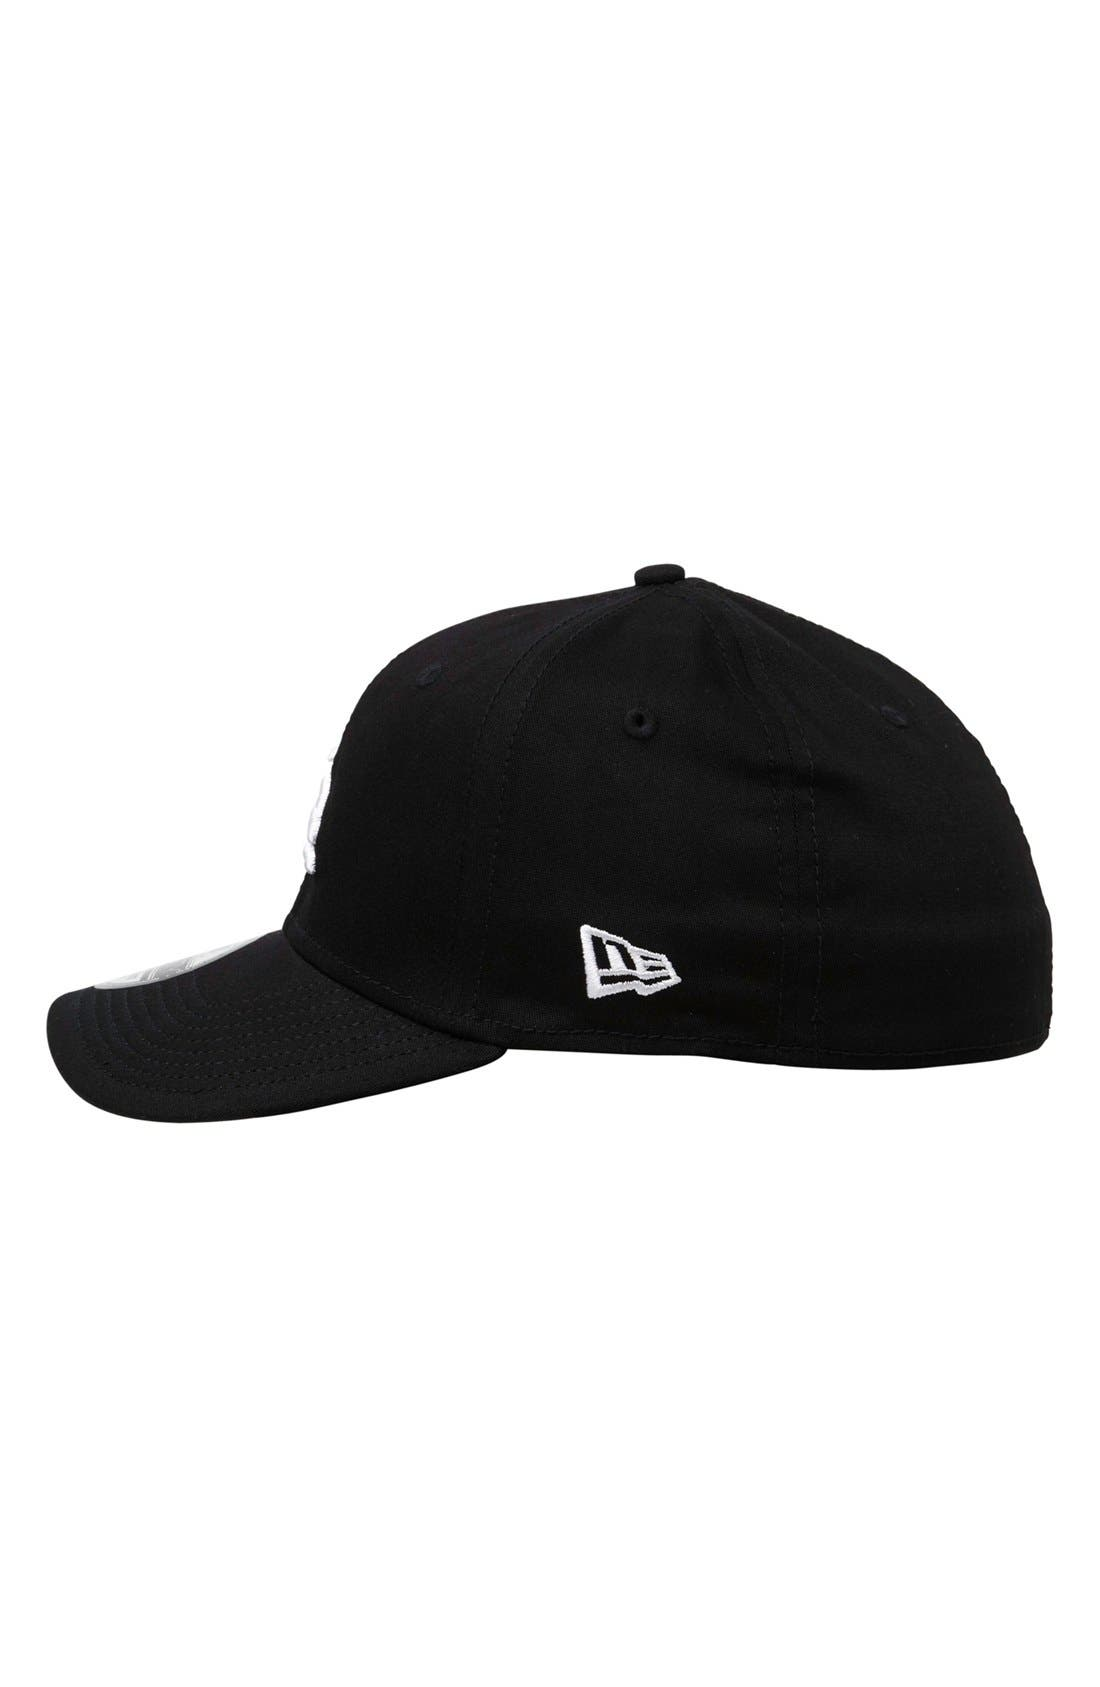 'Ruckis' Fitted Hat,                             Alternate thumbnail 2, color,                             001